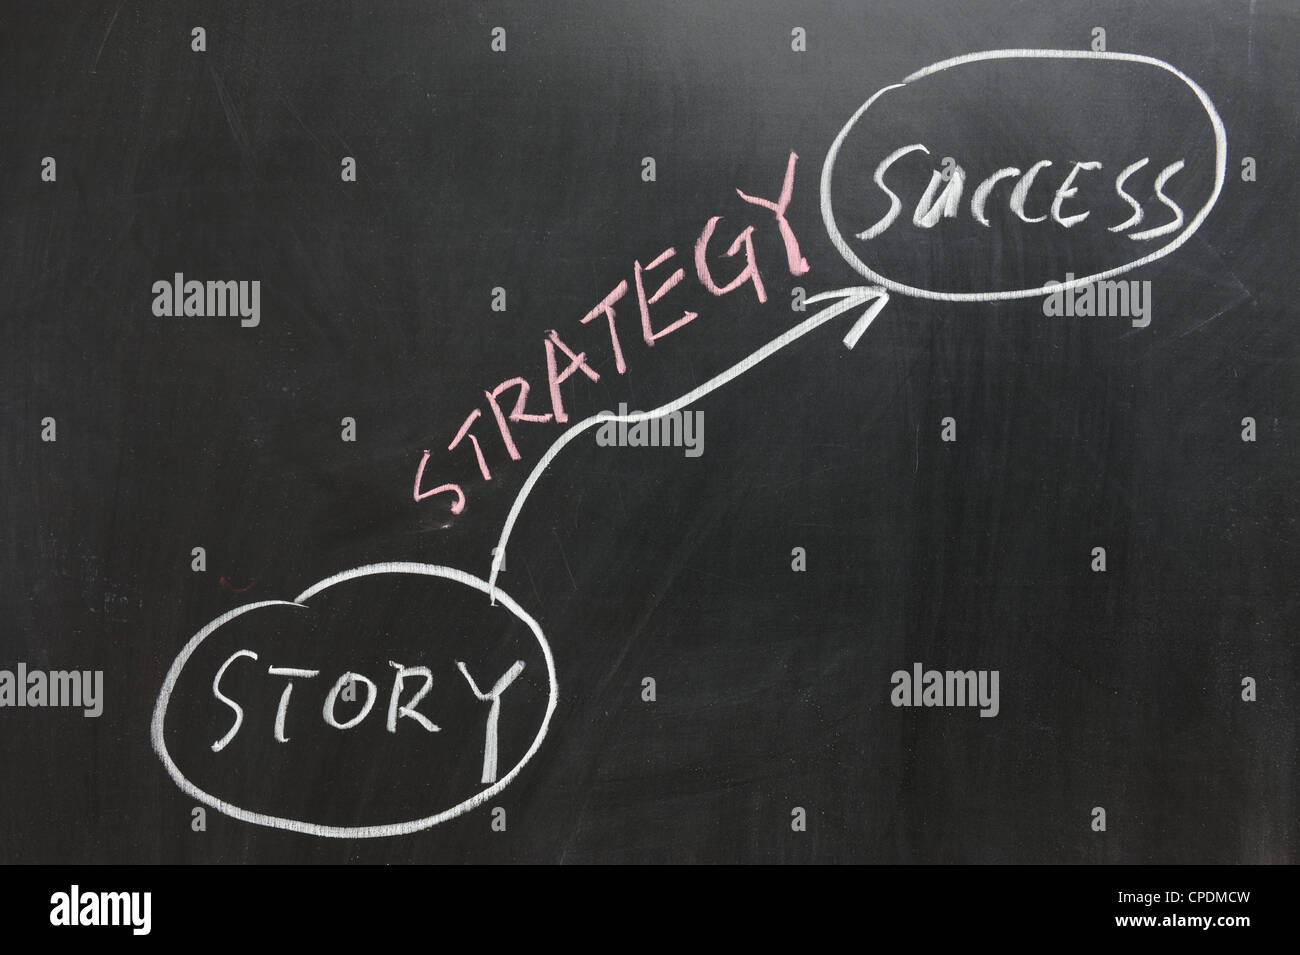 Chalkboard drawing - From Story to Success - Stock Image